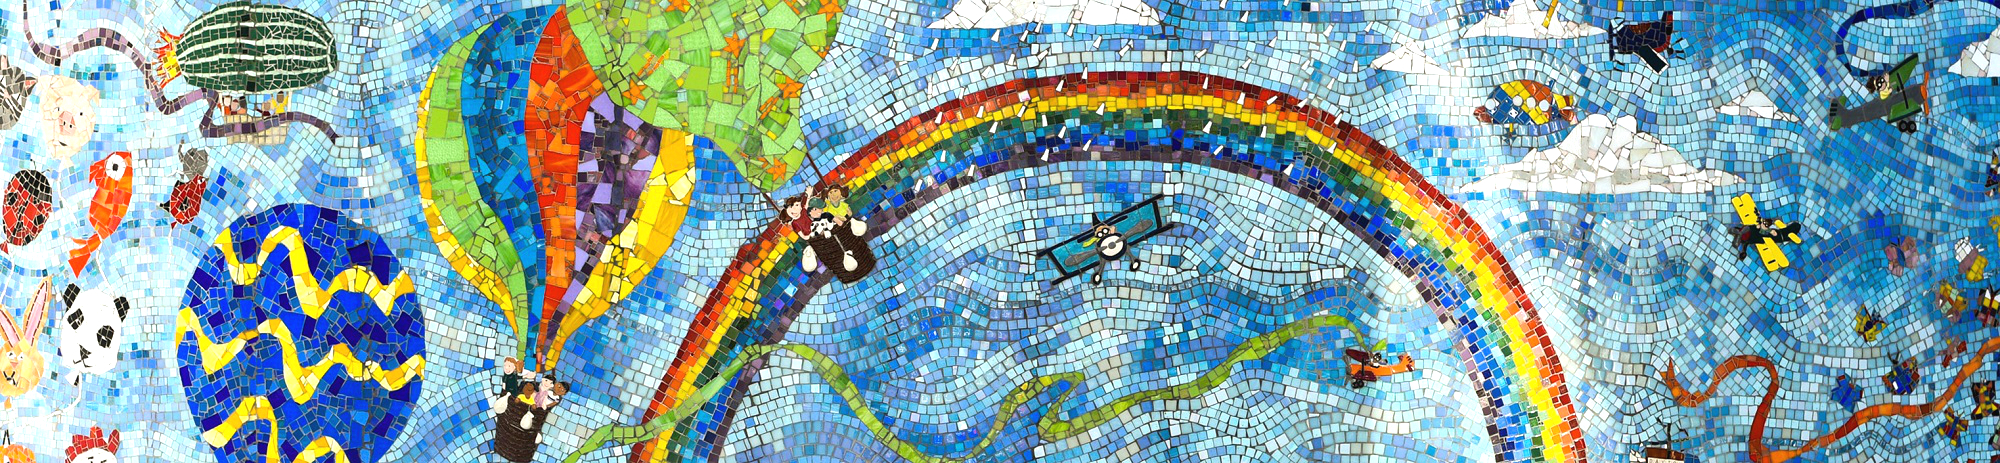 mosaic of children's artwork